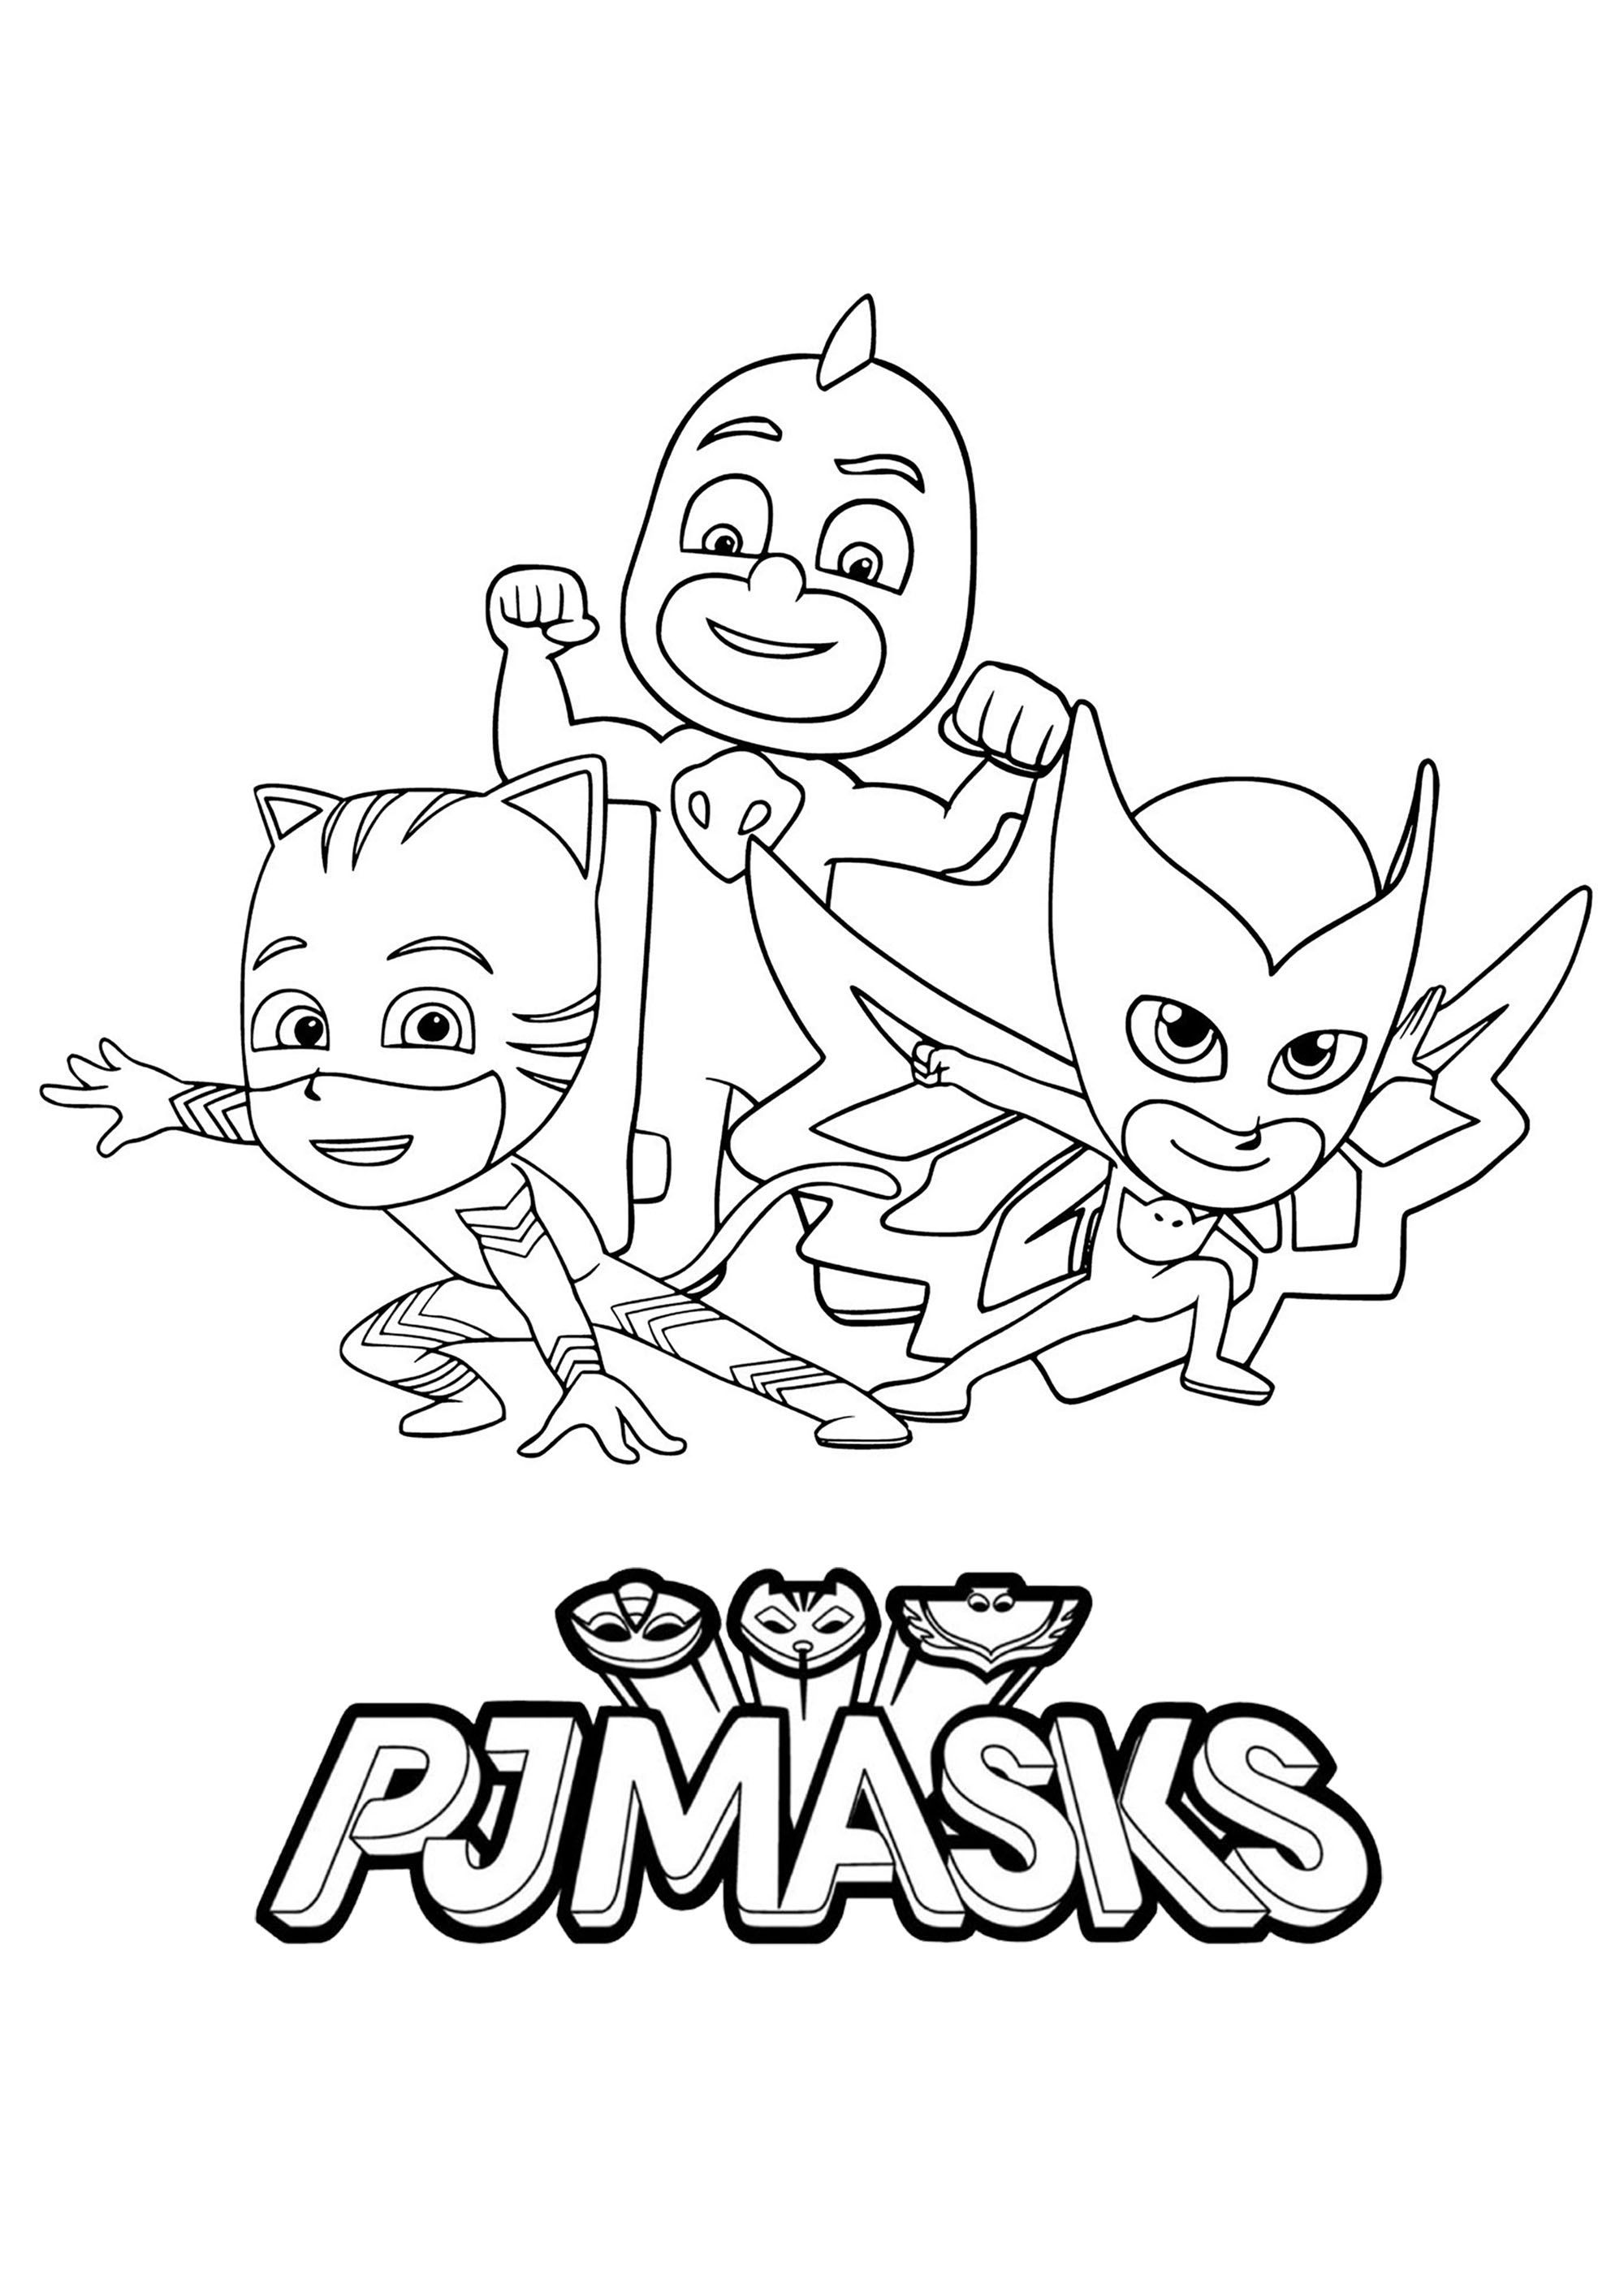 90fdc7f177956c216f34e445a5d75245 » Christmas Color Pages Easy To Draw Pj Masks